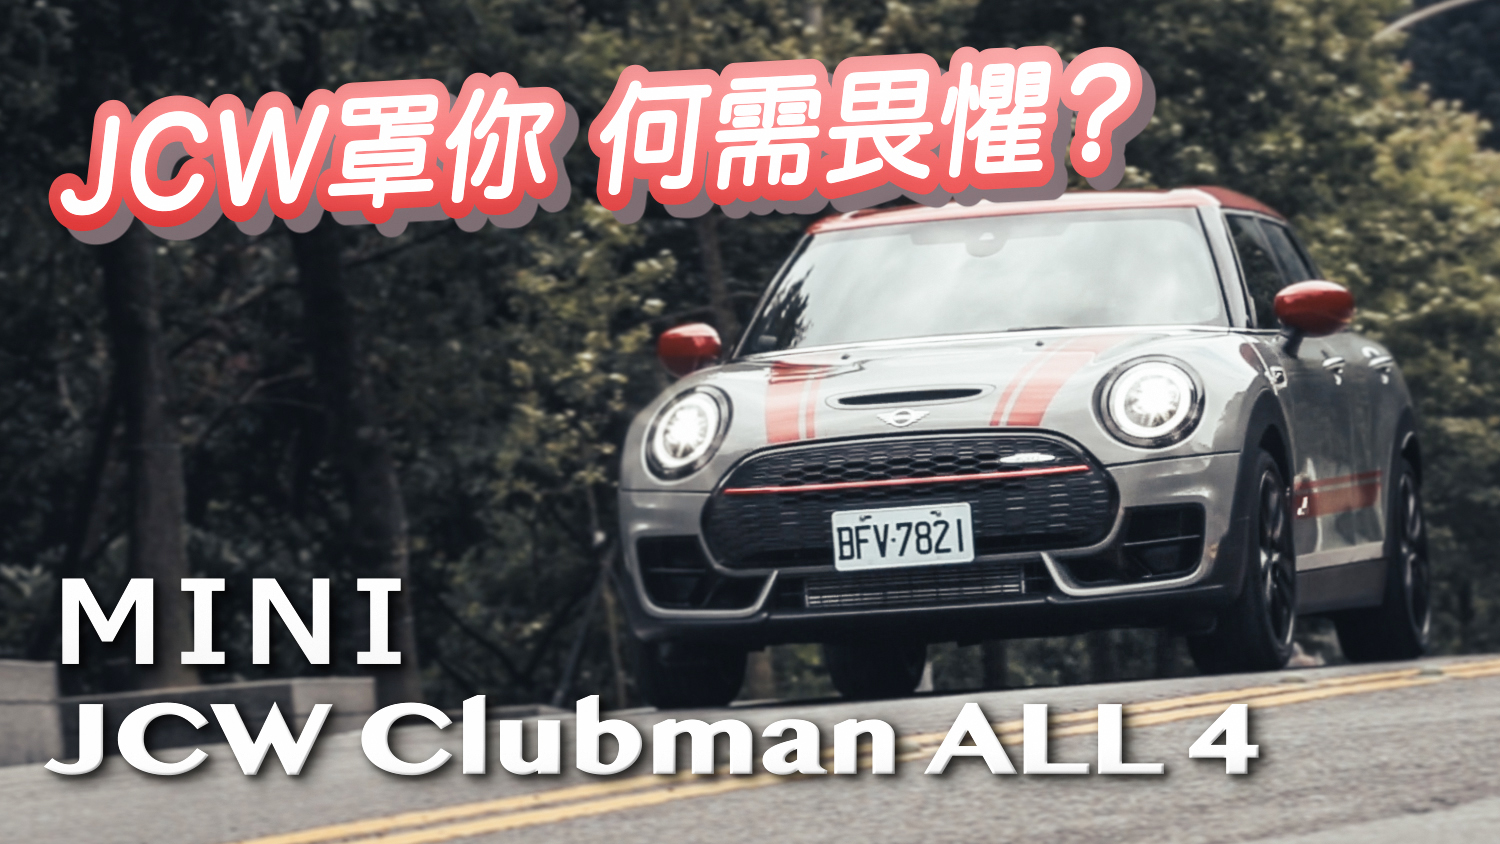 旅行,不妨狂野些 MINI JCW Clubman ALL4